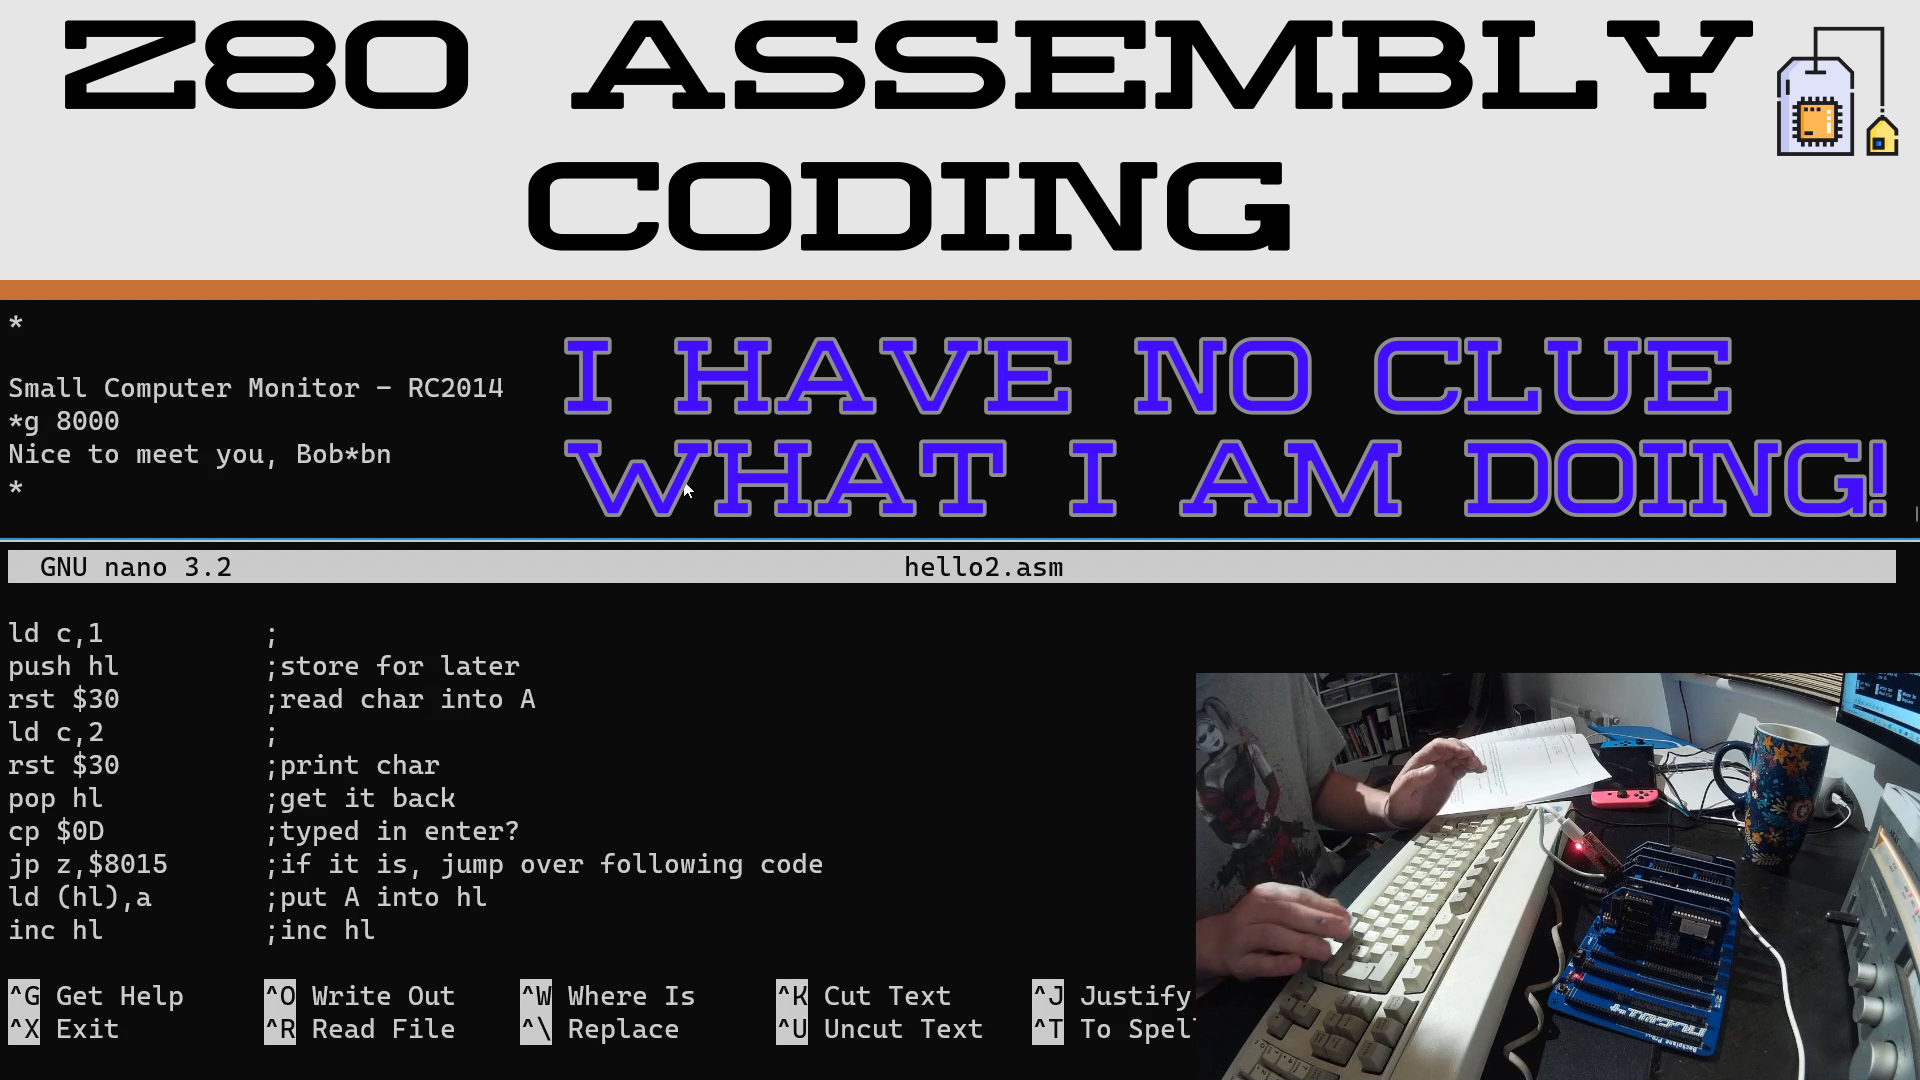 Clueless Chillout Coding